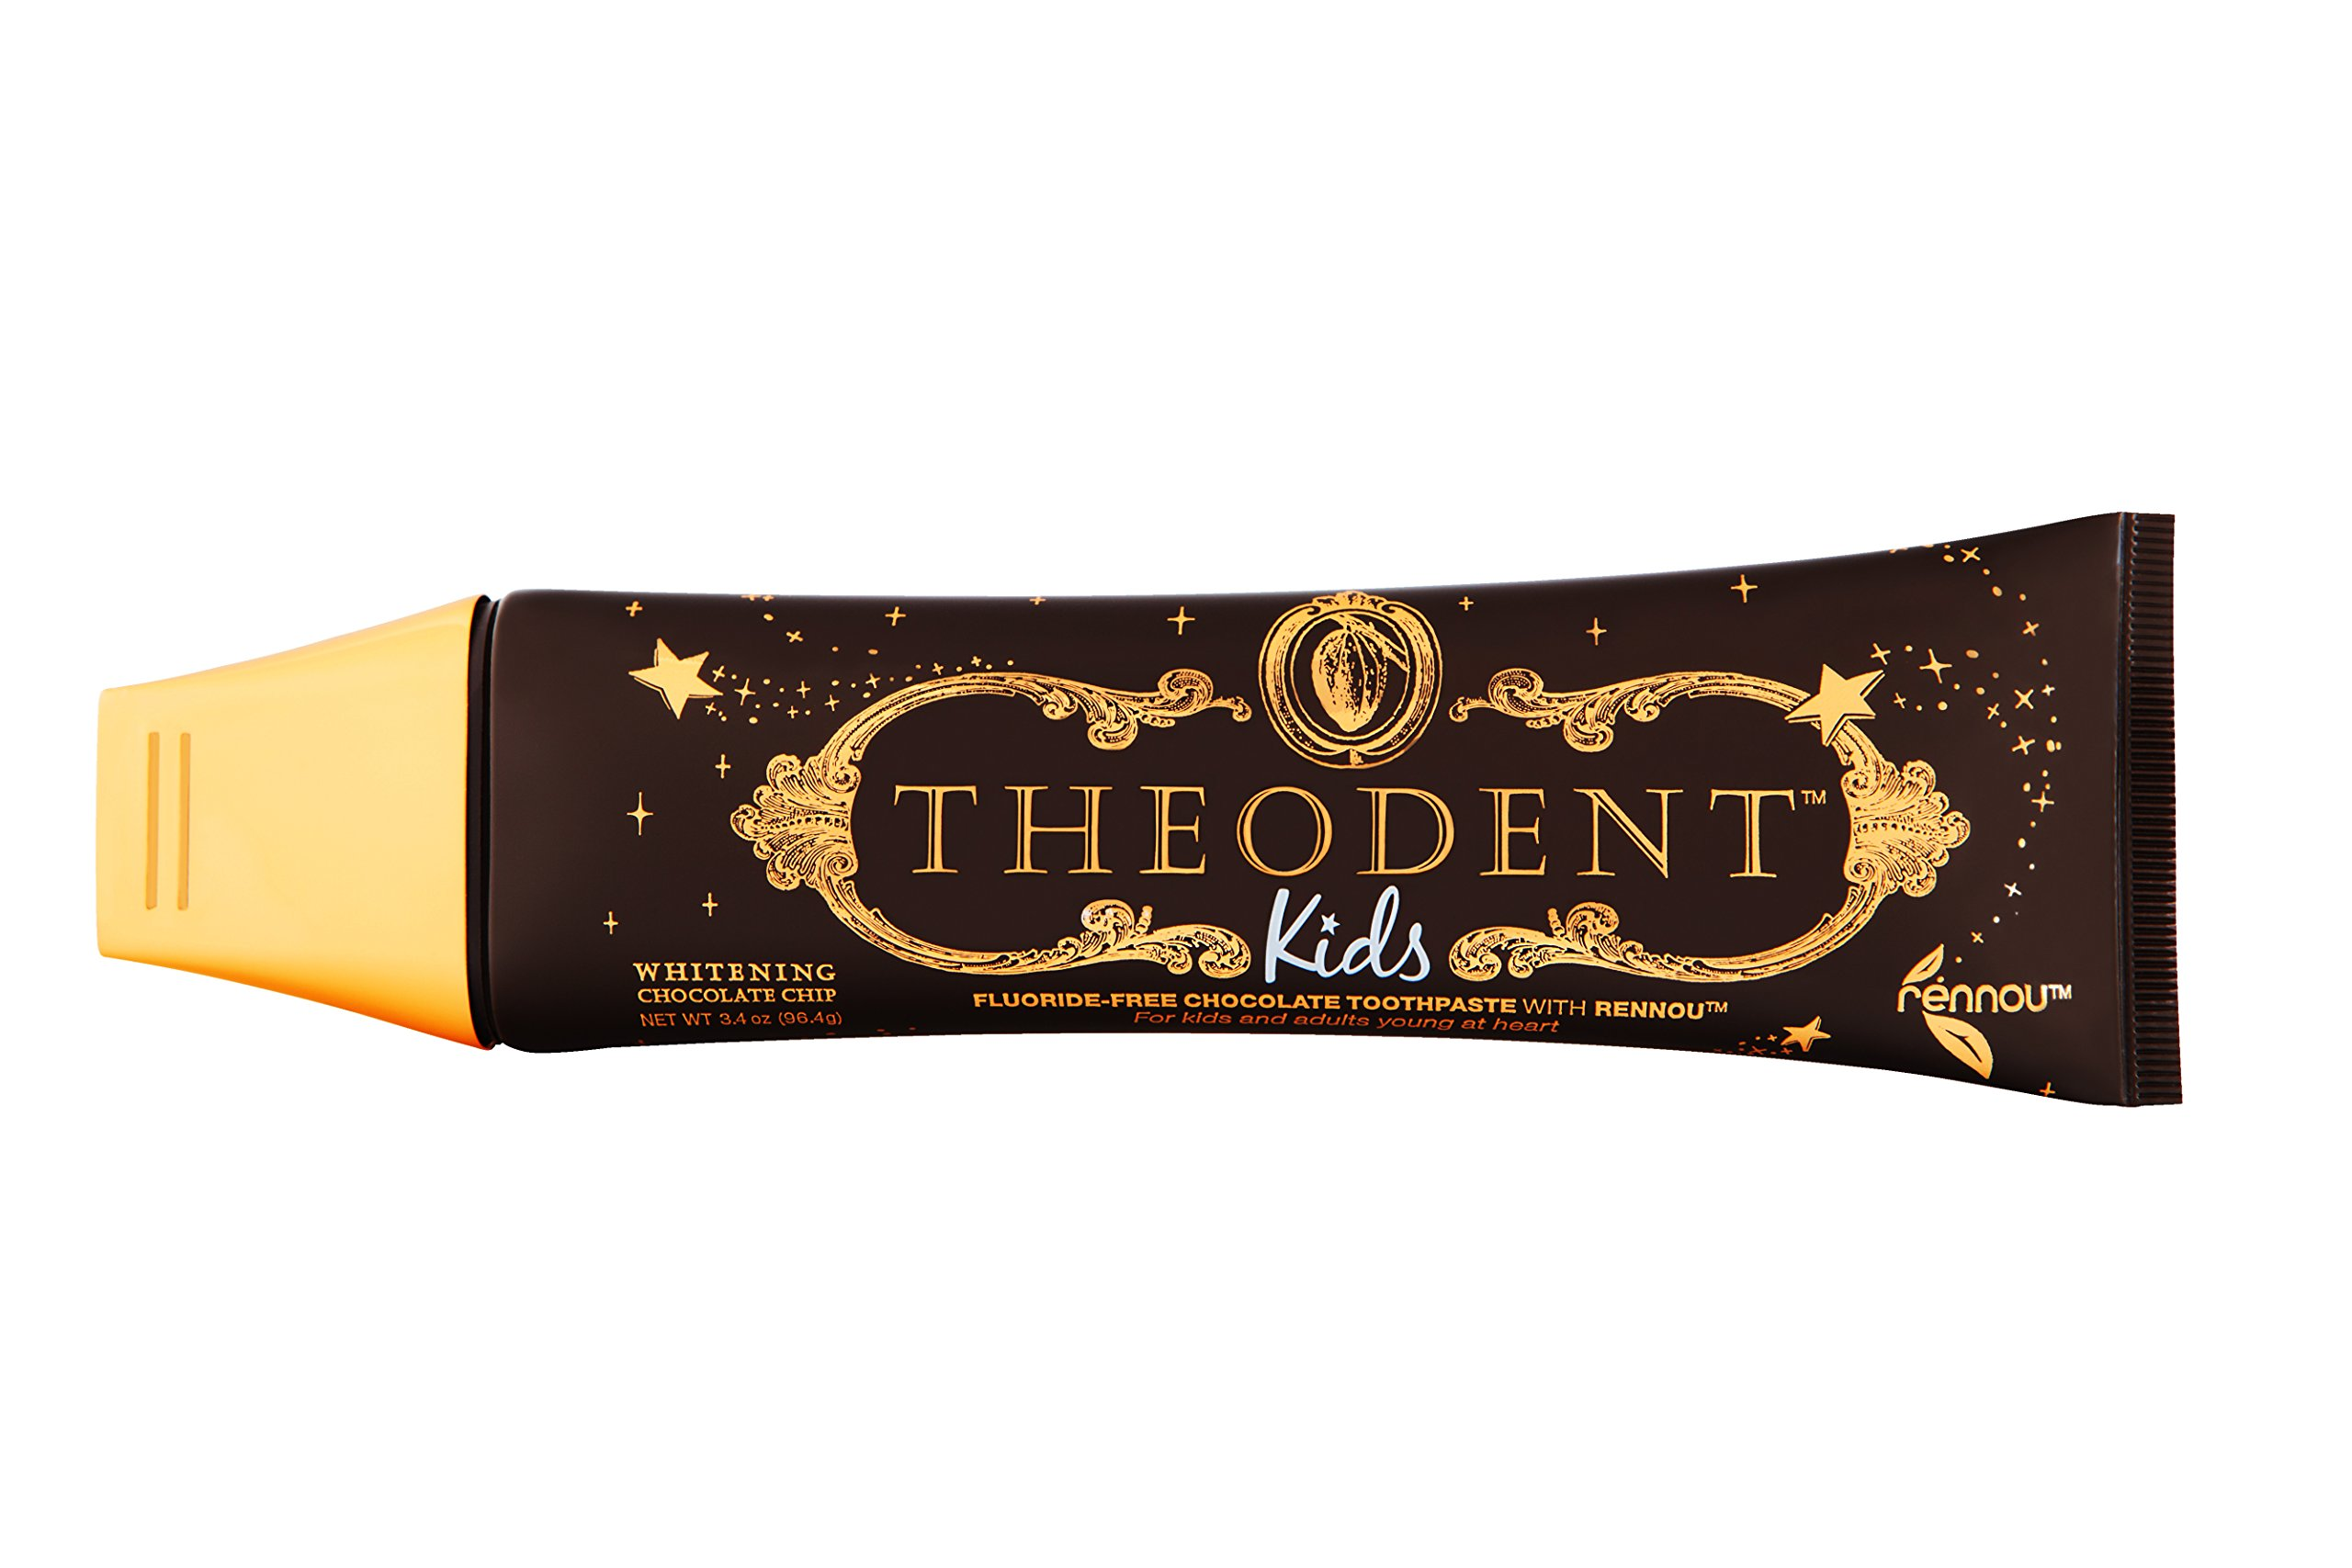 THEODENT KIDS with Rennou®: Whitening Chocolate Chip - Fluoride-Free Toothpaste Rebuilds, Hardens, and Strengthens Your Child's Enamel and Offers a Solution to The ''Do Not Swallow'' Dilemma